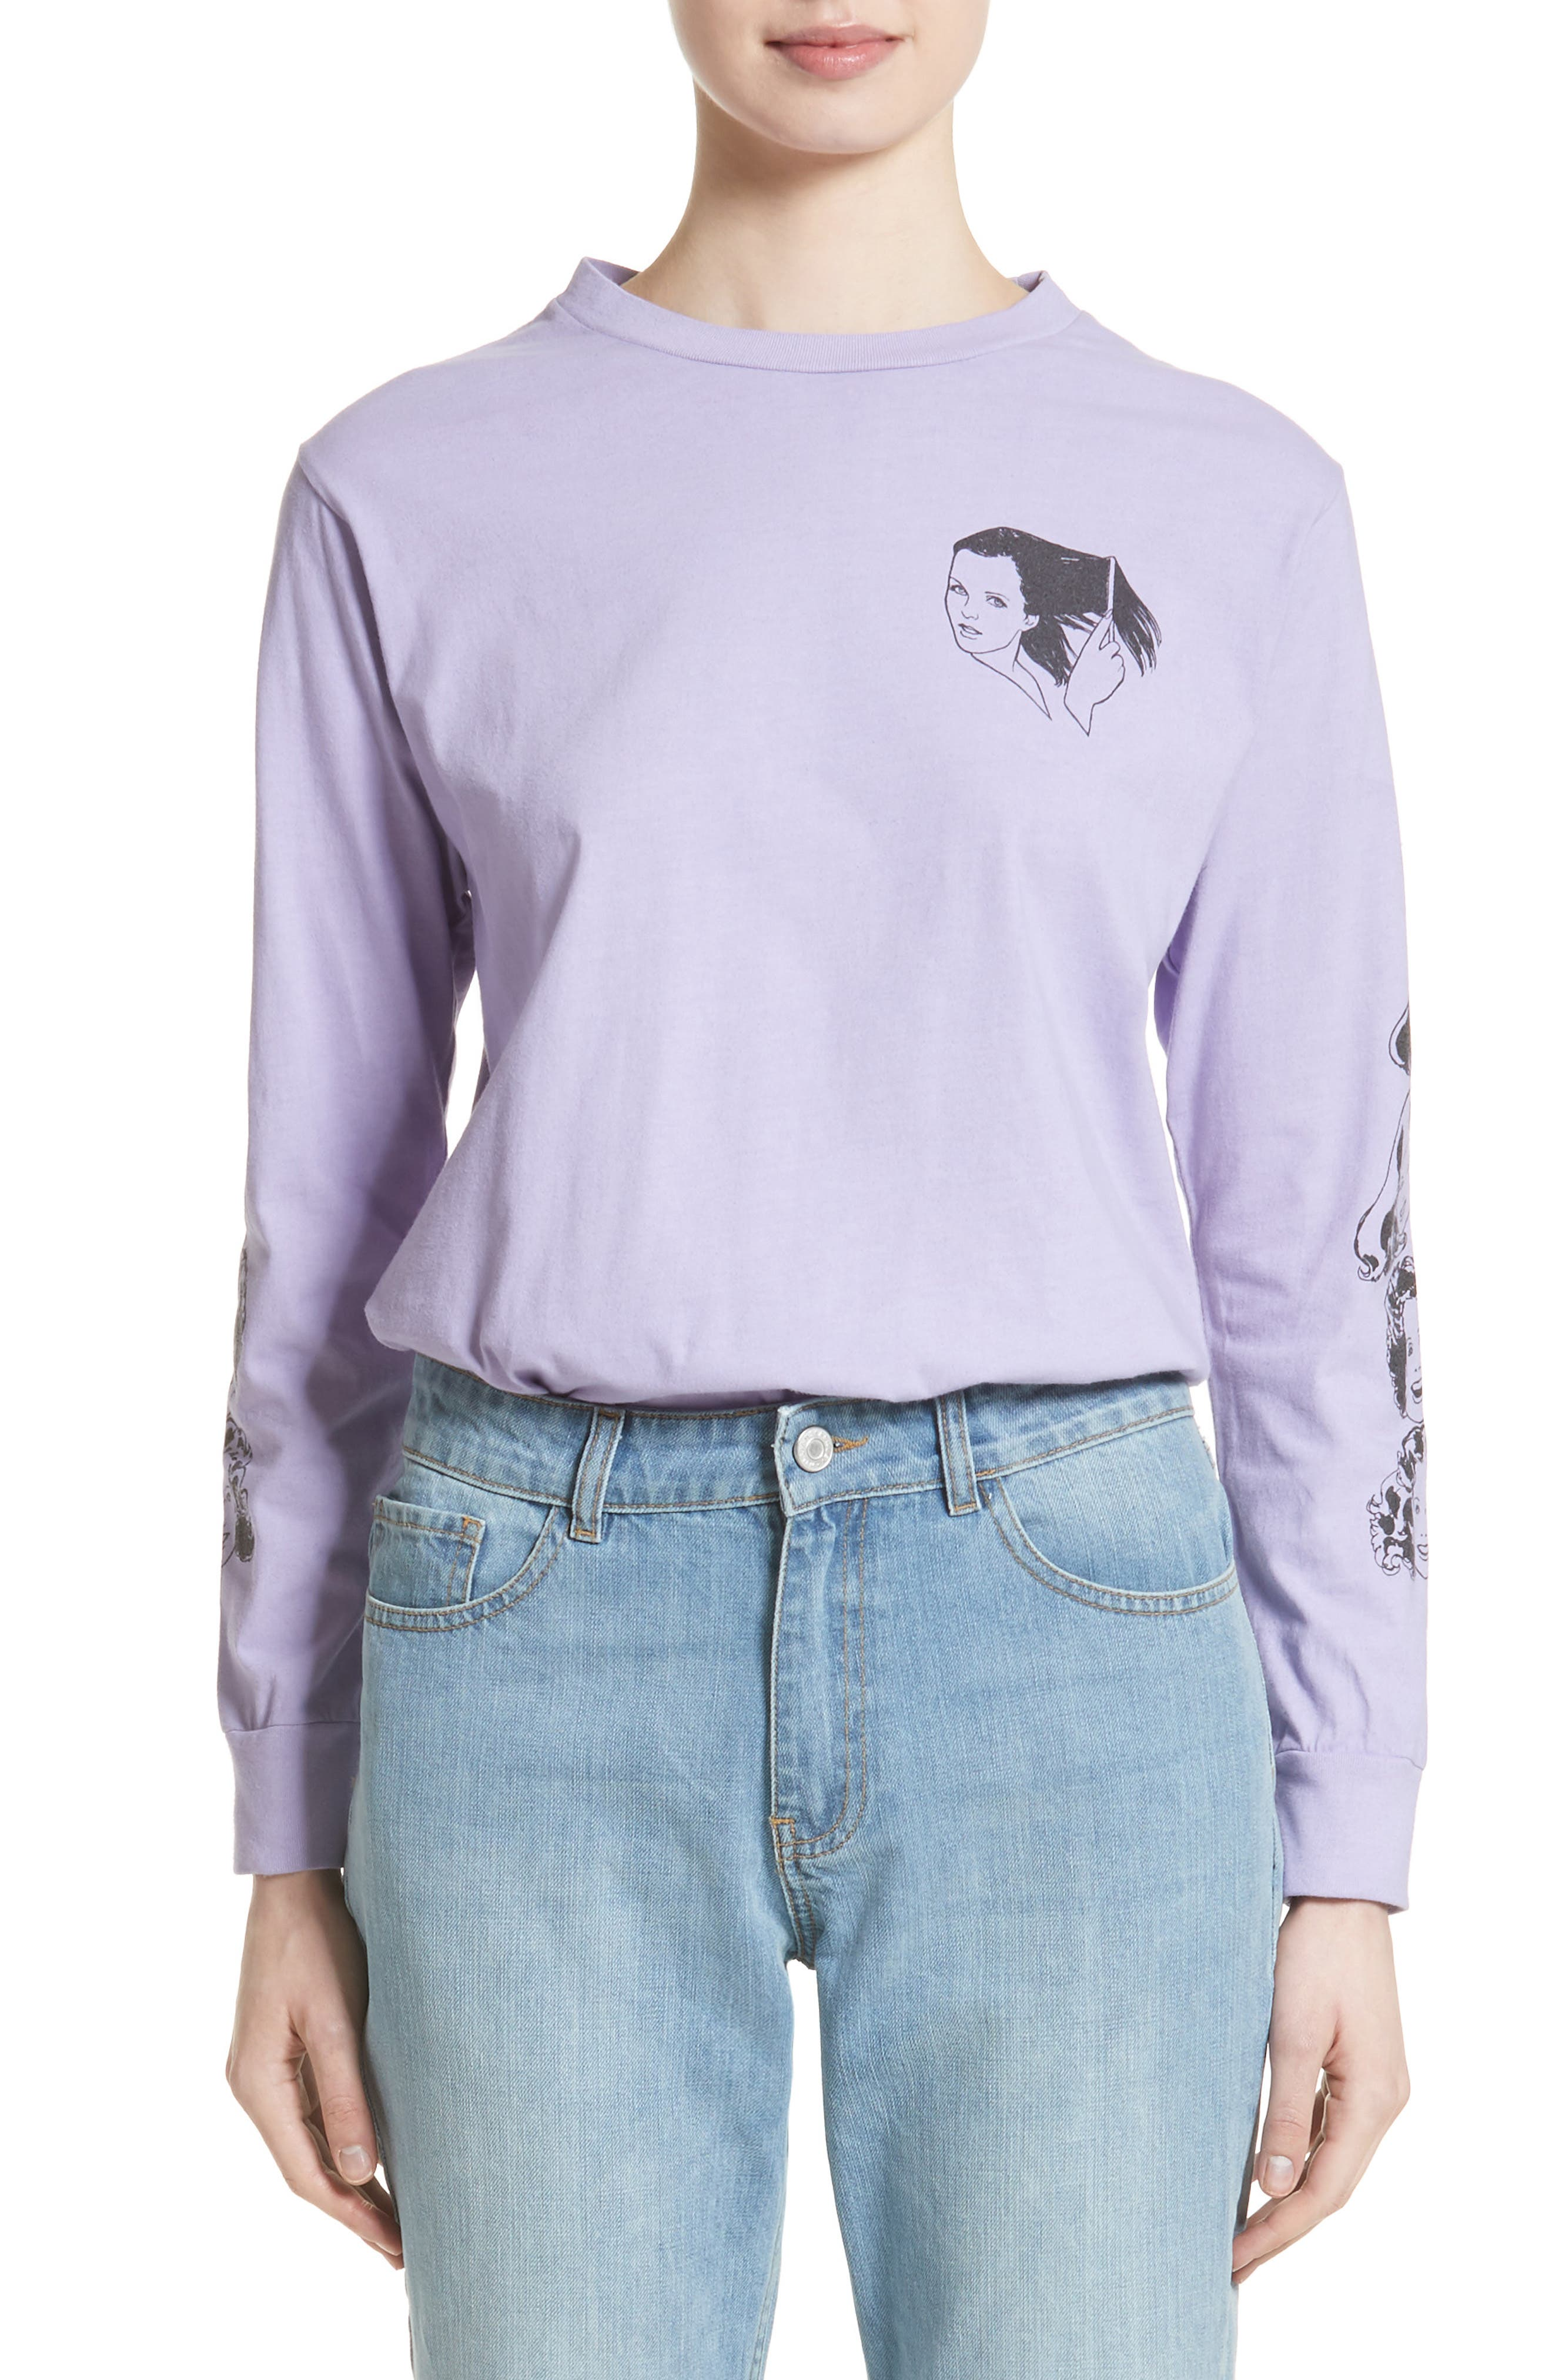 Ashley Williams Graphic Tee (Nordstrom Exclusive)